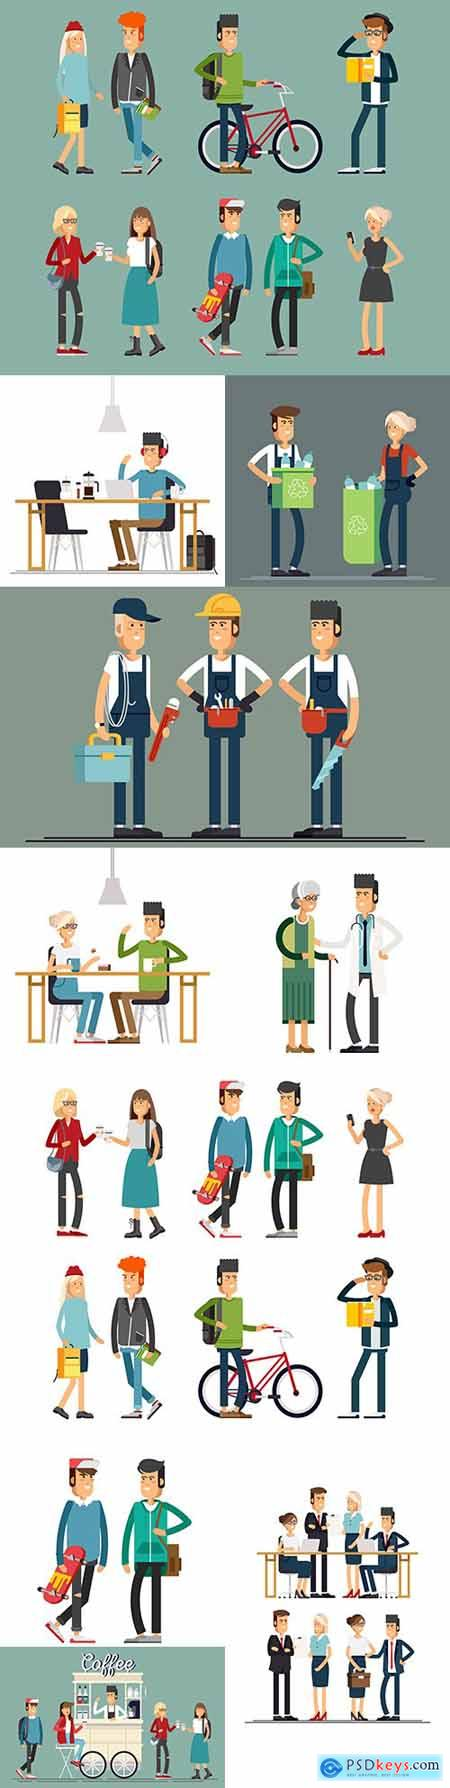 Fashion and modern people of different professions flat illustrations